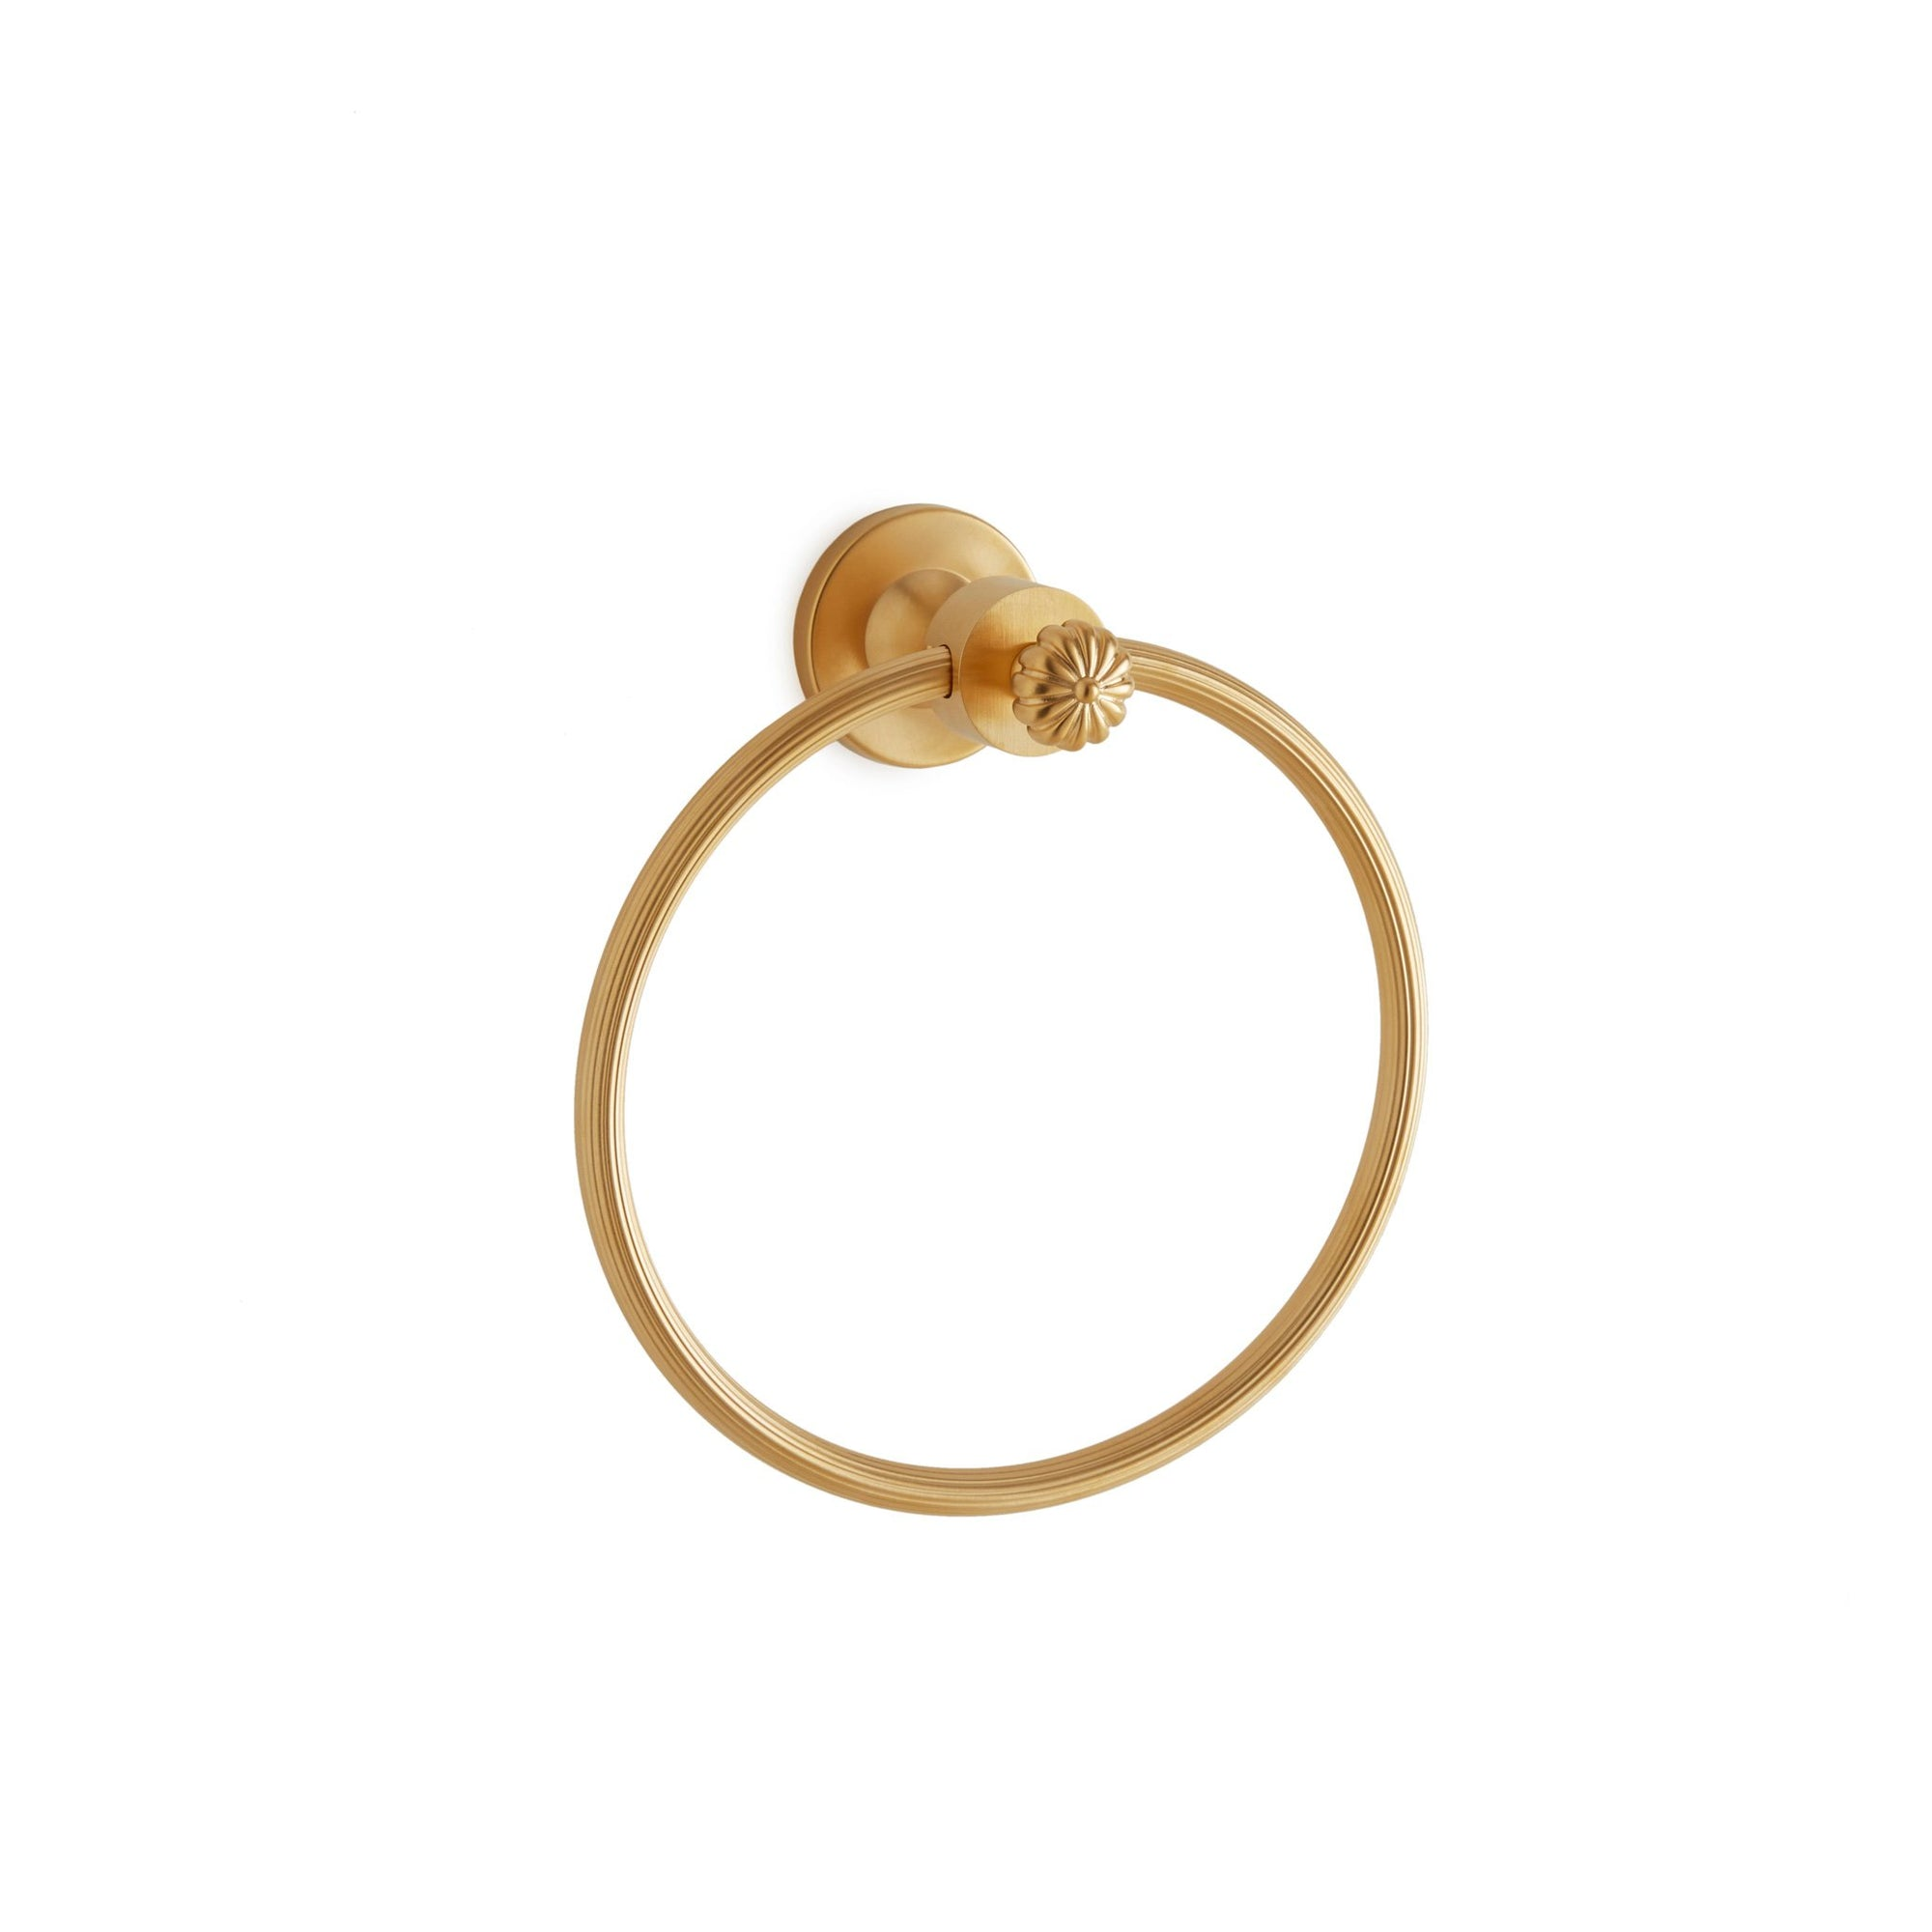 3429-GP Sherle Wagner International Melon Towel Ring in Gold Plate metal finish